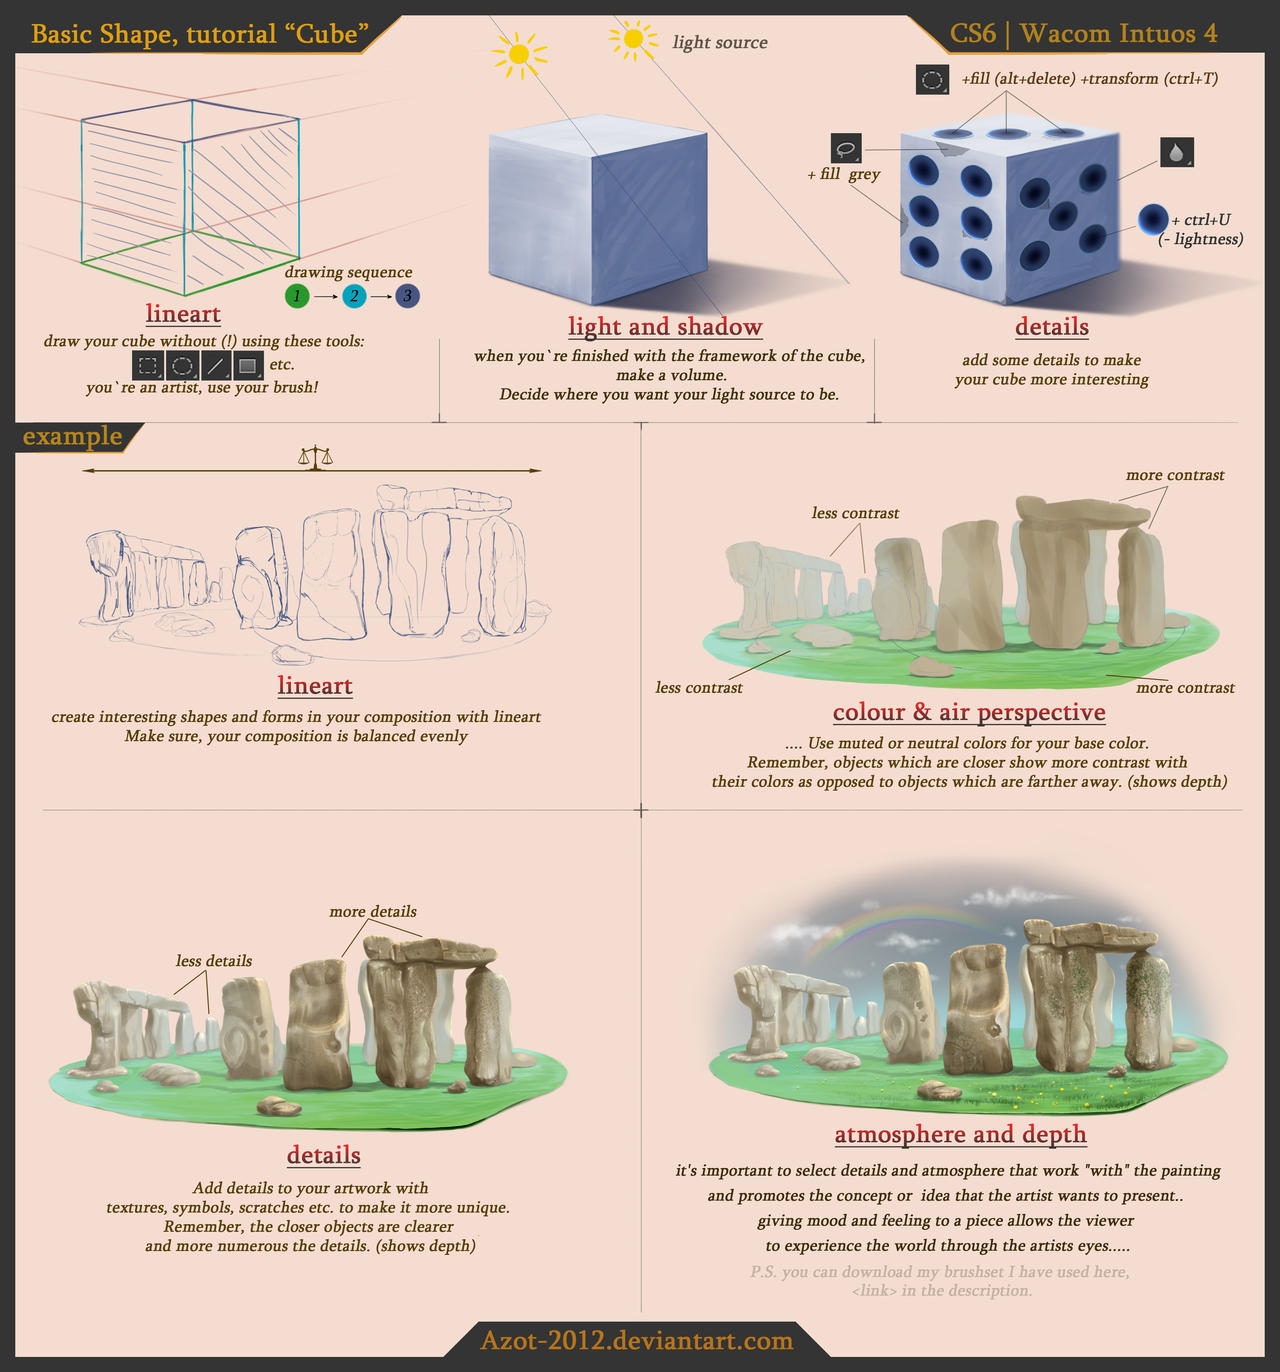 Cube tutorial by Azot2014